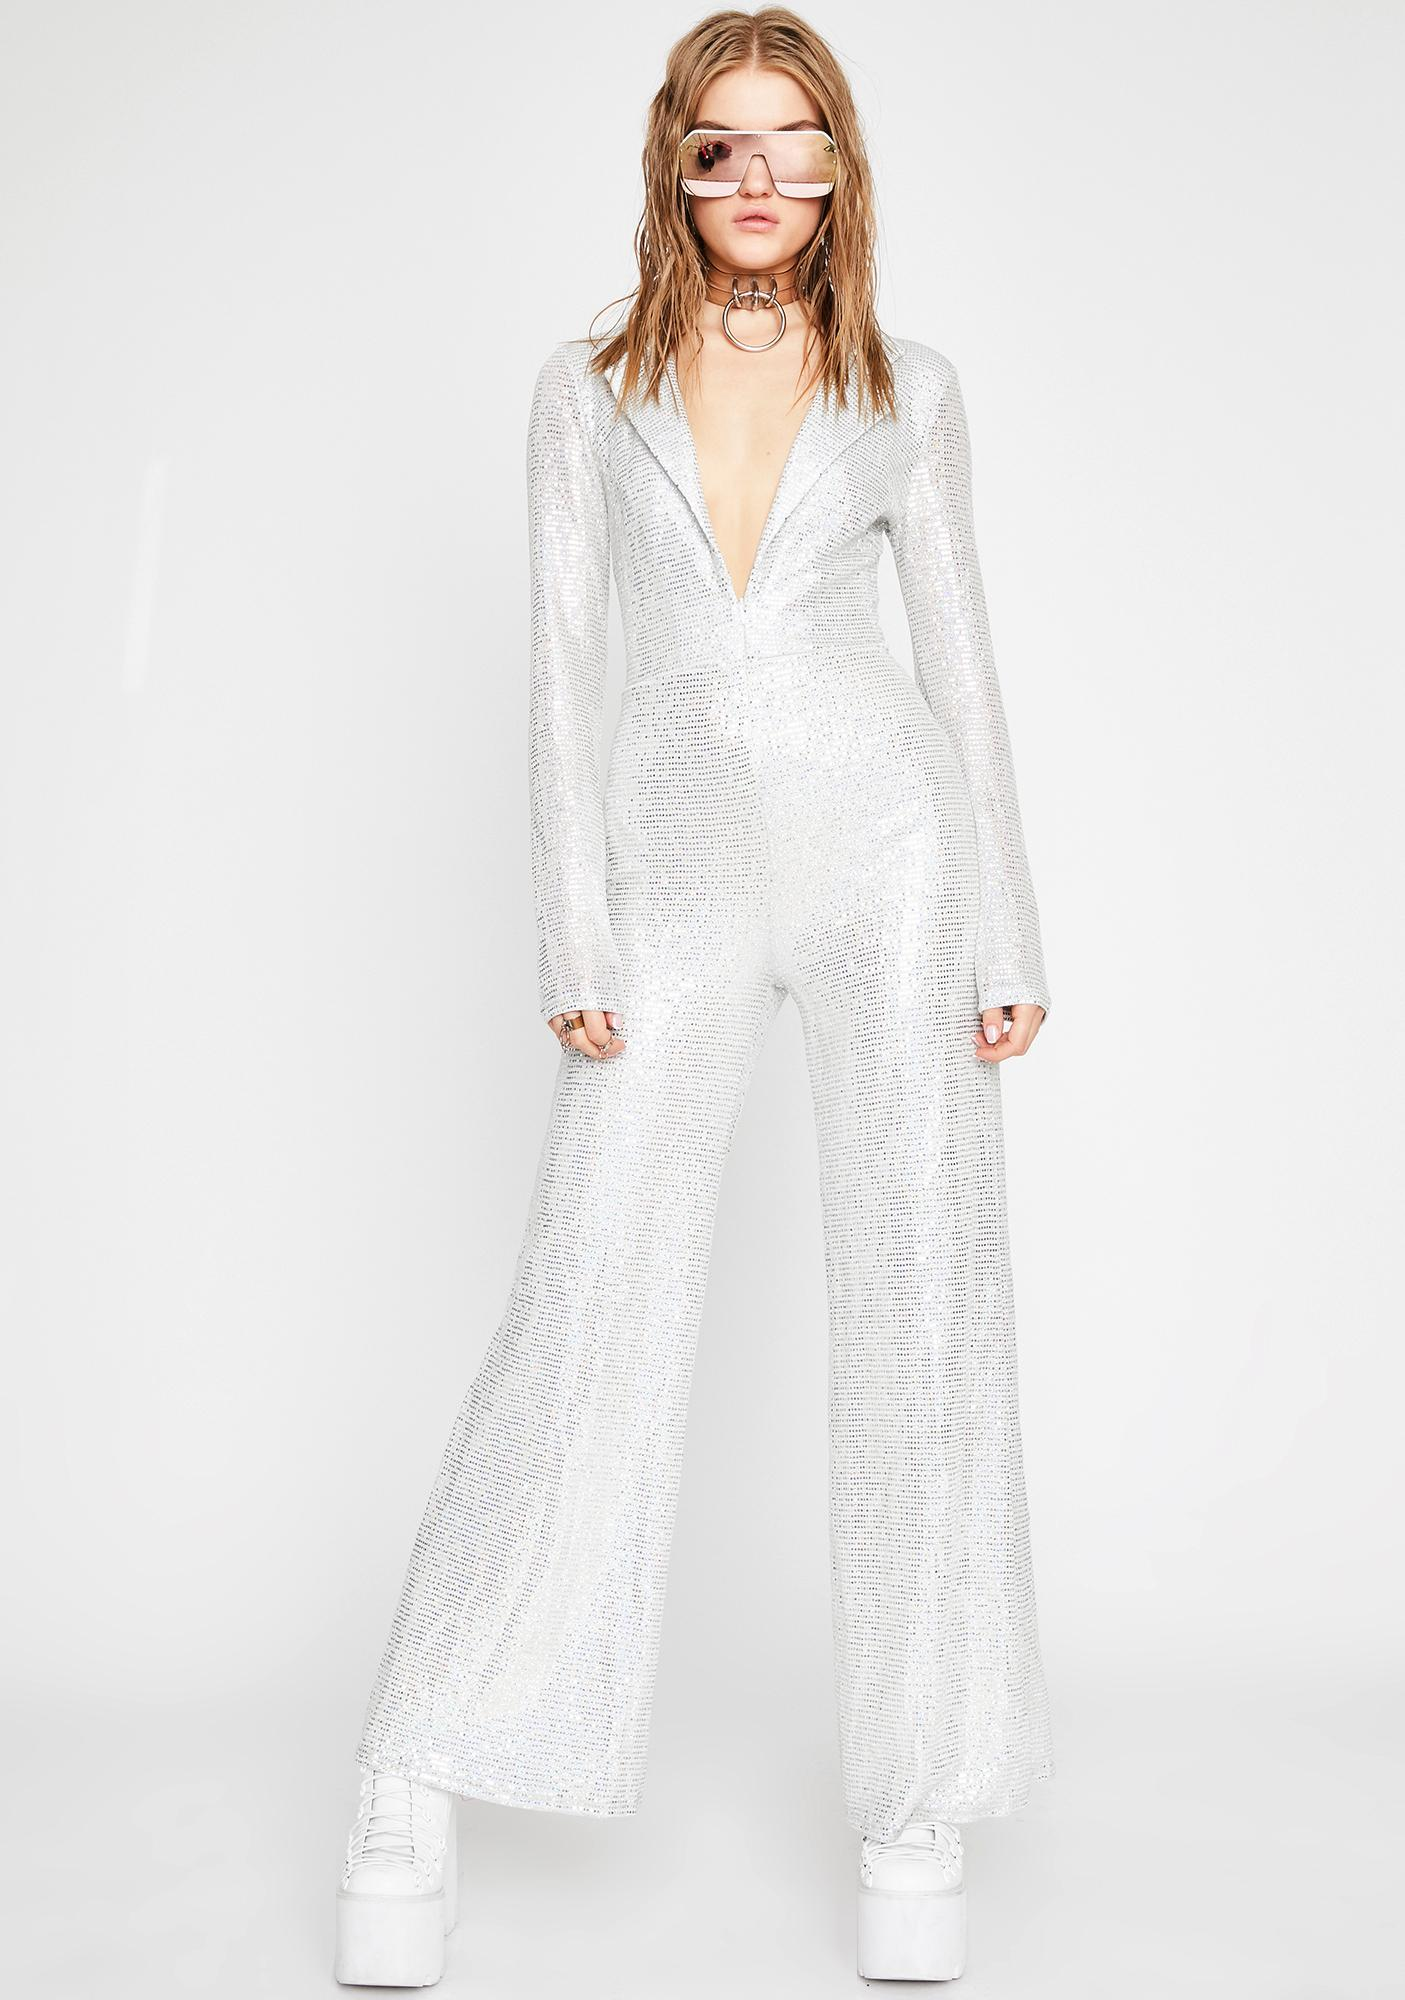 Sales promotion select for genuine authorized site Disco Fever Sequin Jumpsuit